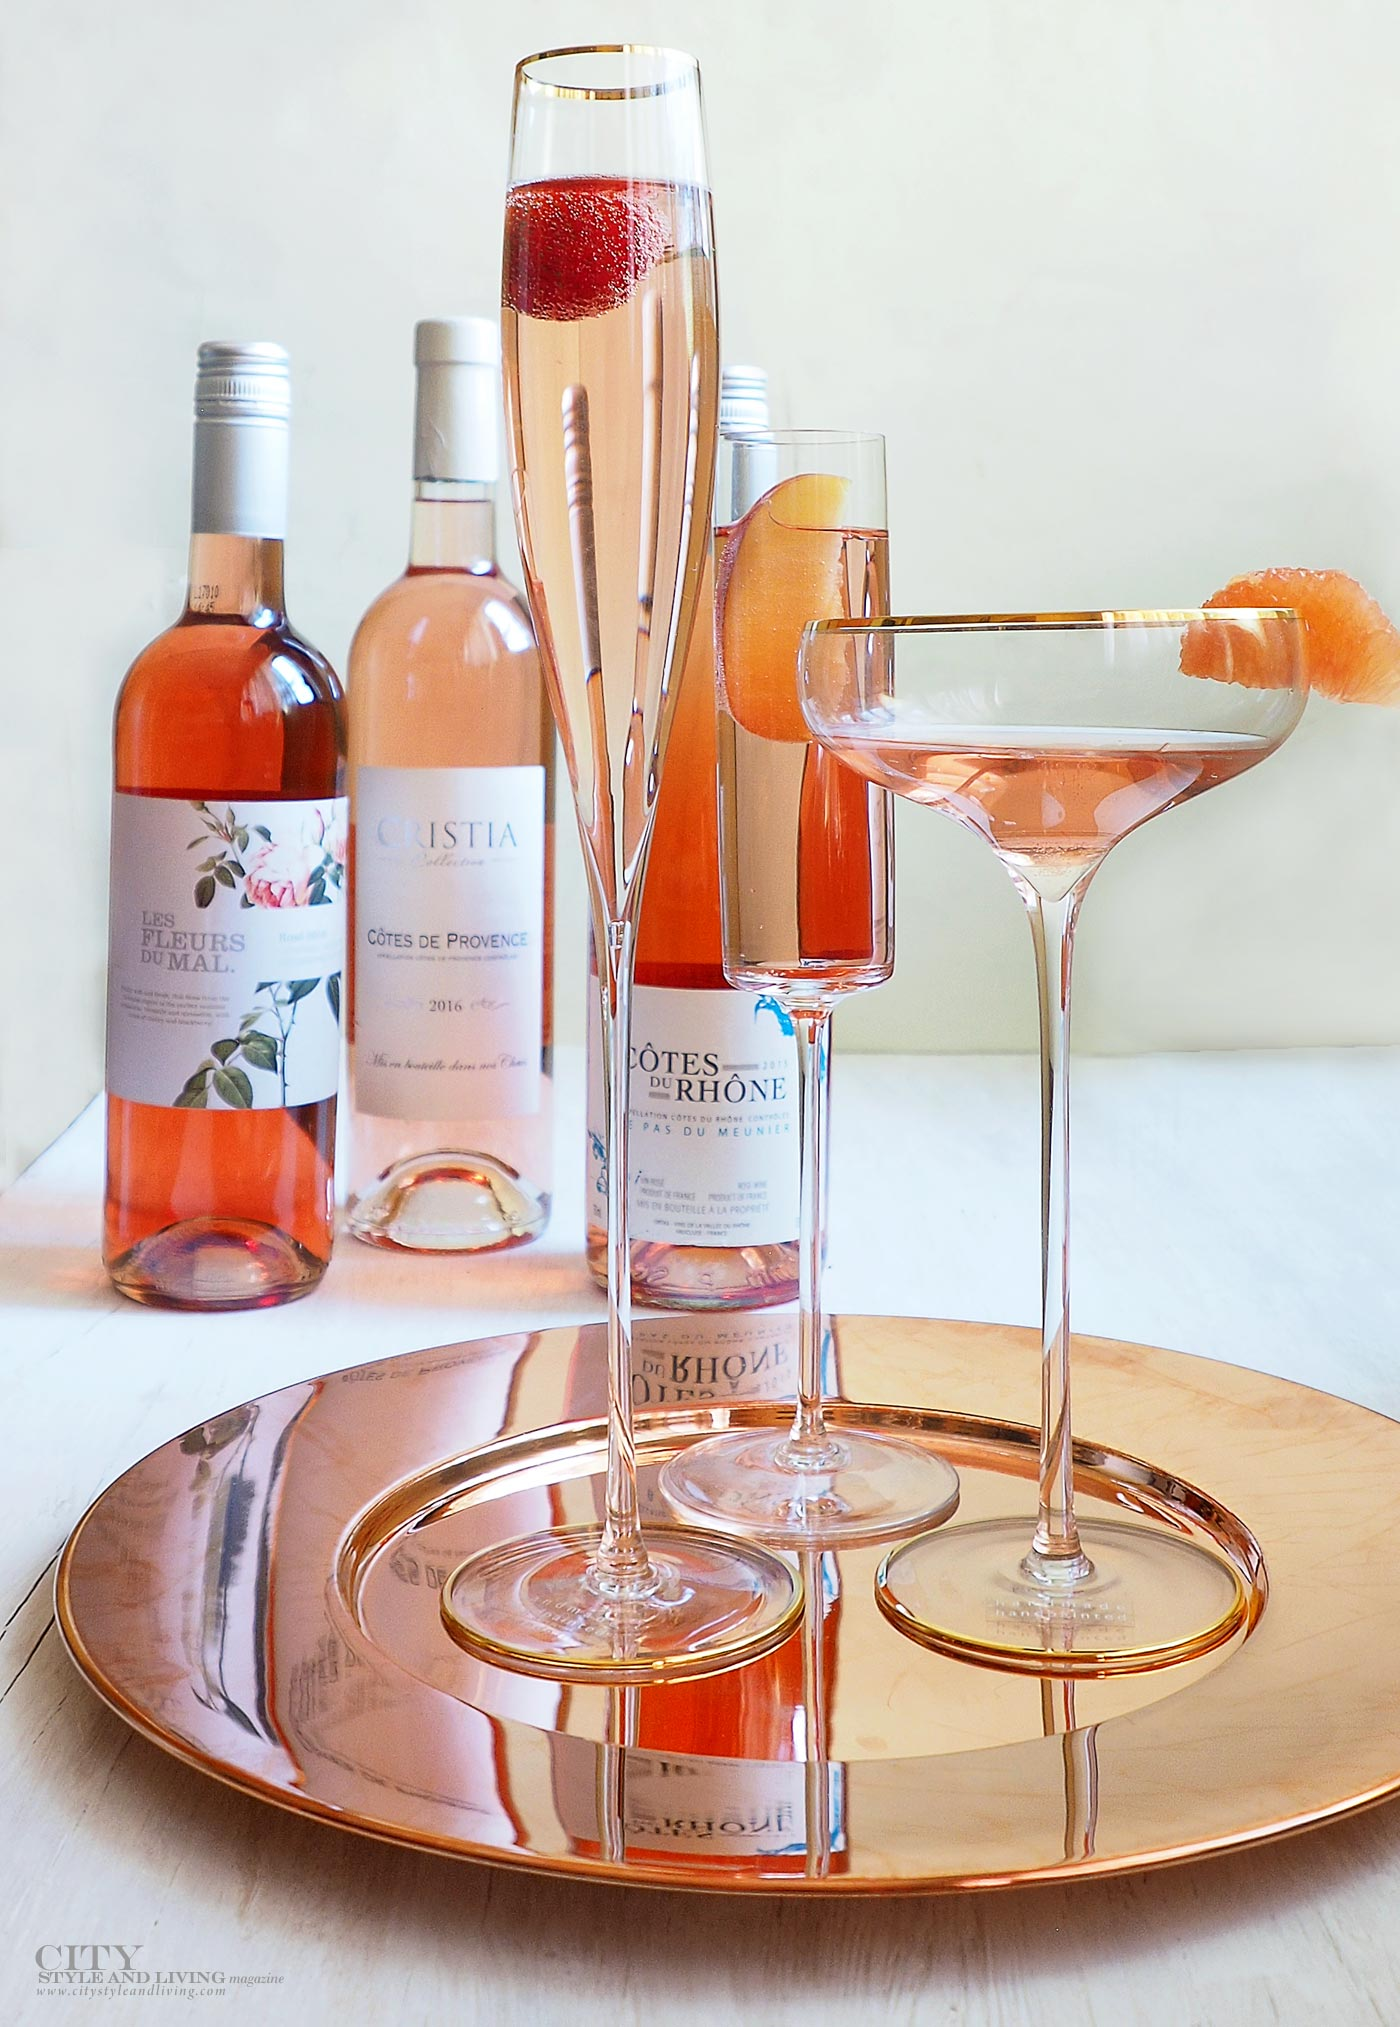 City Style and Living Magazine Rose wine bottles and las international glasses